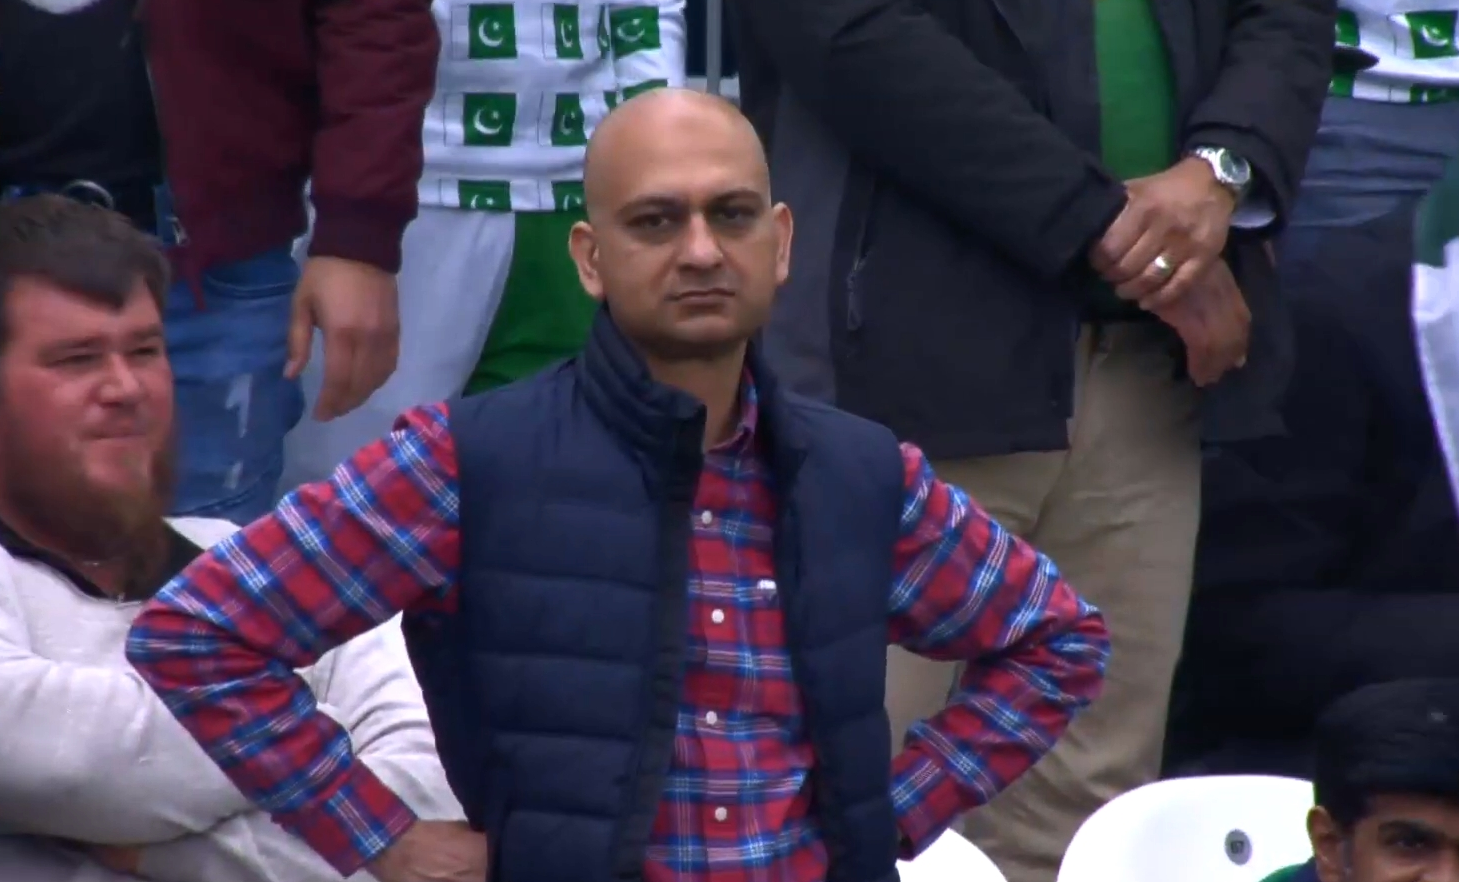 Disappointed Cricket Fan Blank Template - Imgflip